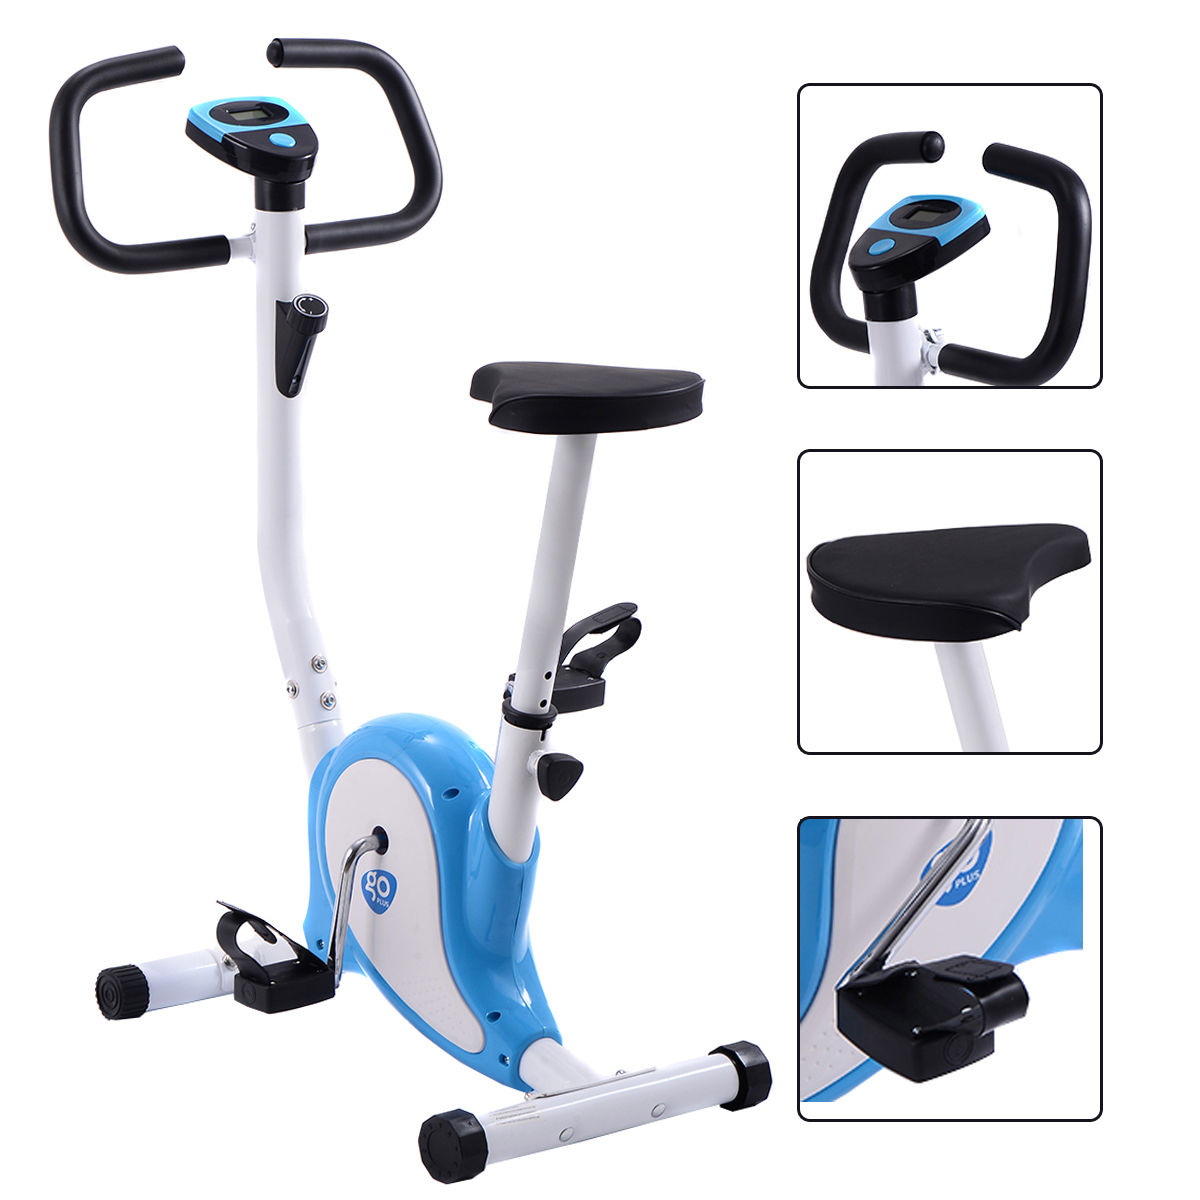 Goplus Exercise Bike Stationary Cycling Fitness Cardio Aerobic Equipment Gym Blue